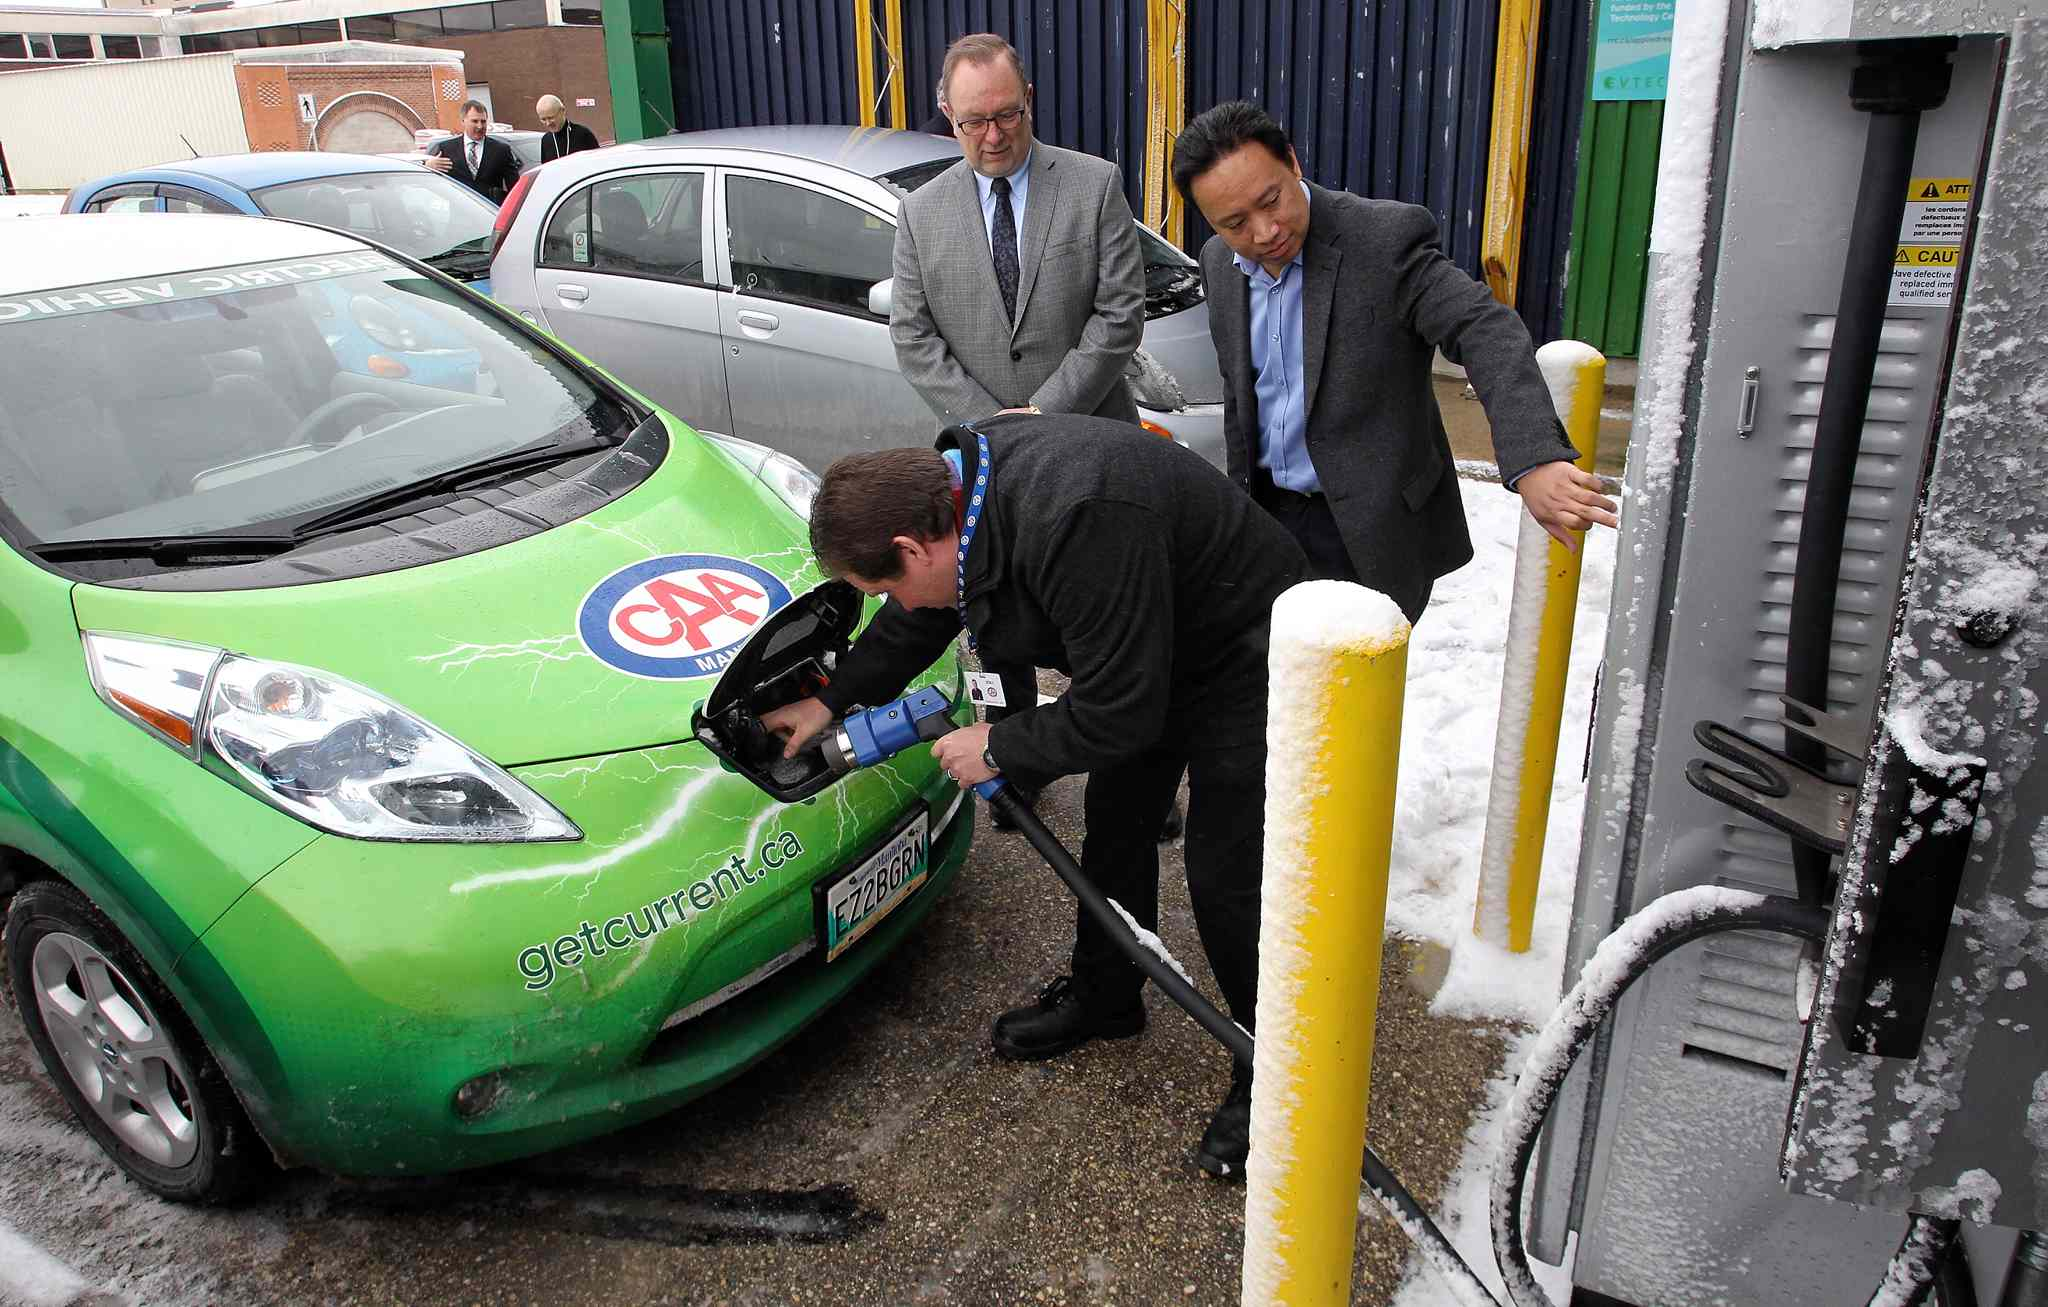 Ken Francis with CAA Manitoba plugs in his car while Jose Reyes (right), the research manager at RRC, and Ray Hoemsen, Director of Applied Research at RRC, help out after the unveiling of the recently installed Level 3 electric vehicle quick charging station at the RRC Notre Dame campus.